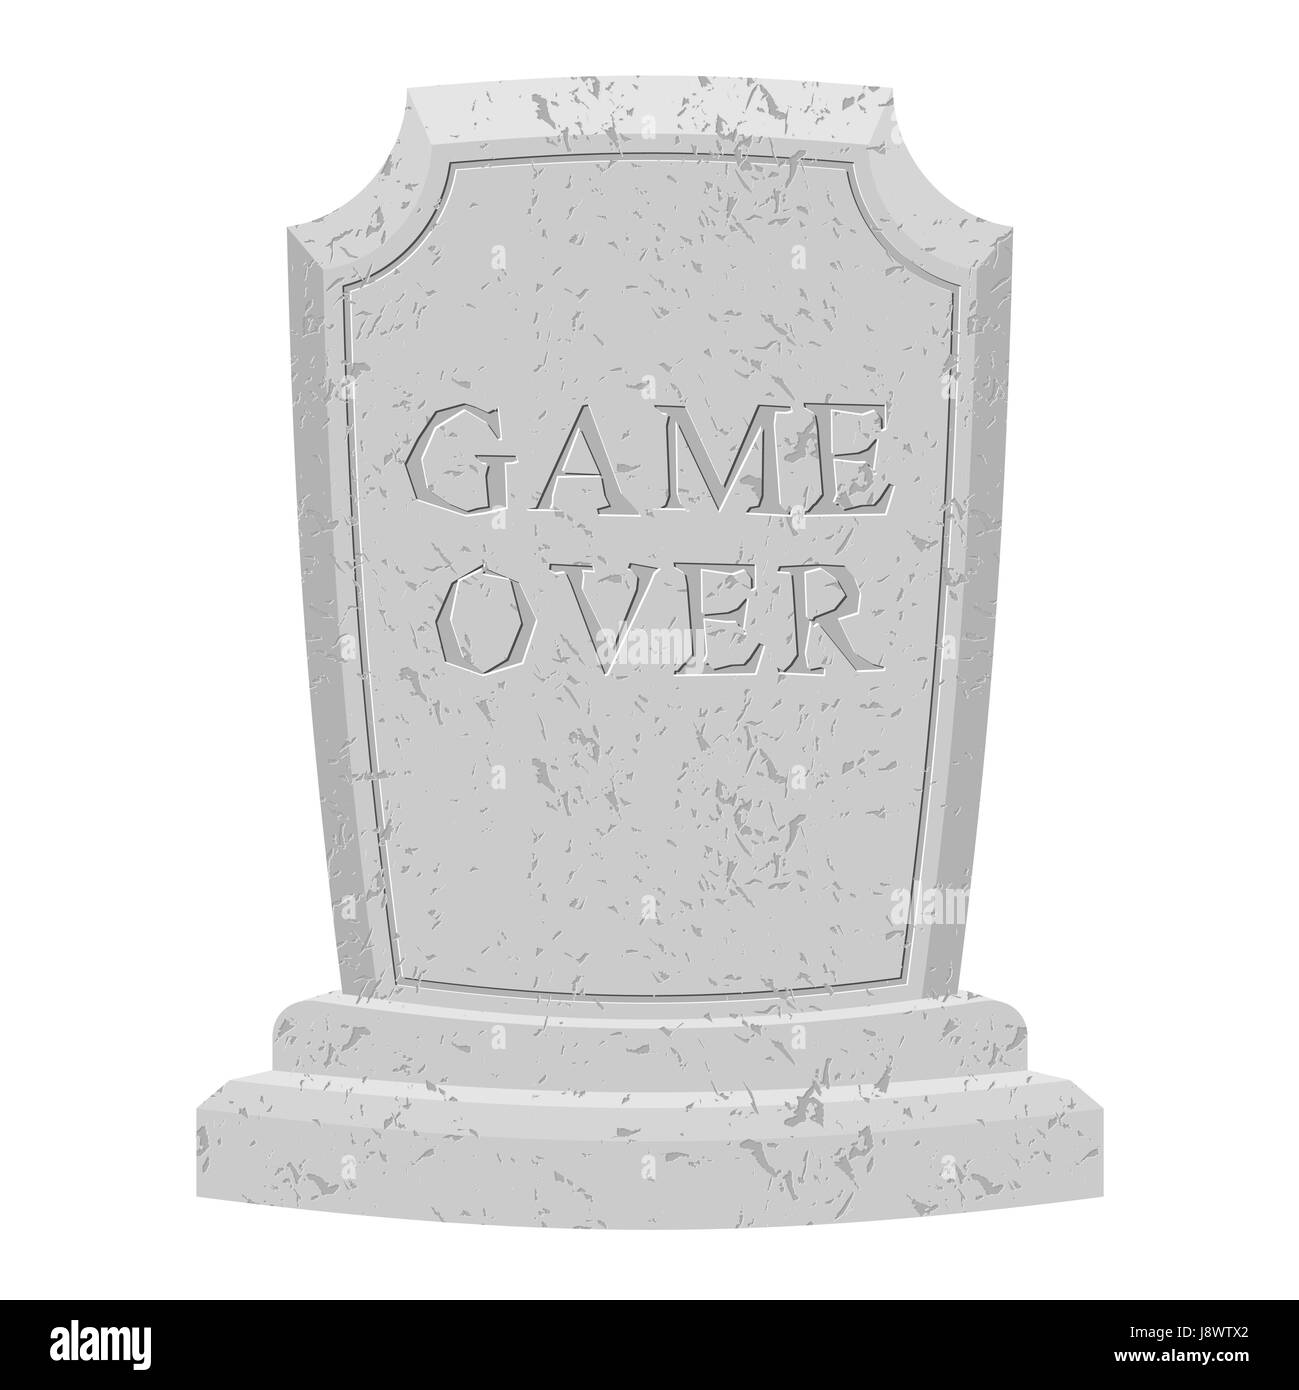 Game over tomb. Carved stone end of game. text tombstone. RIP old cracked. Death is end of life. final inscription - Stock Vector